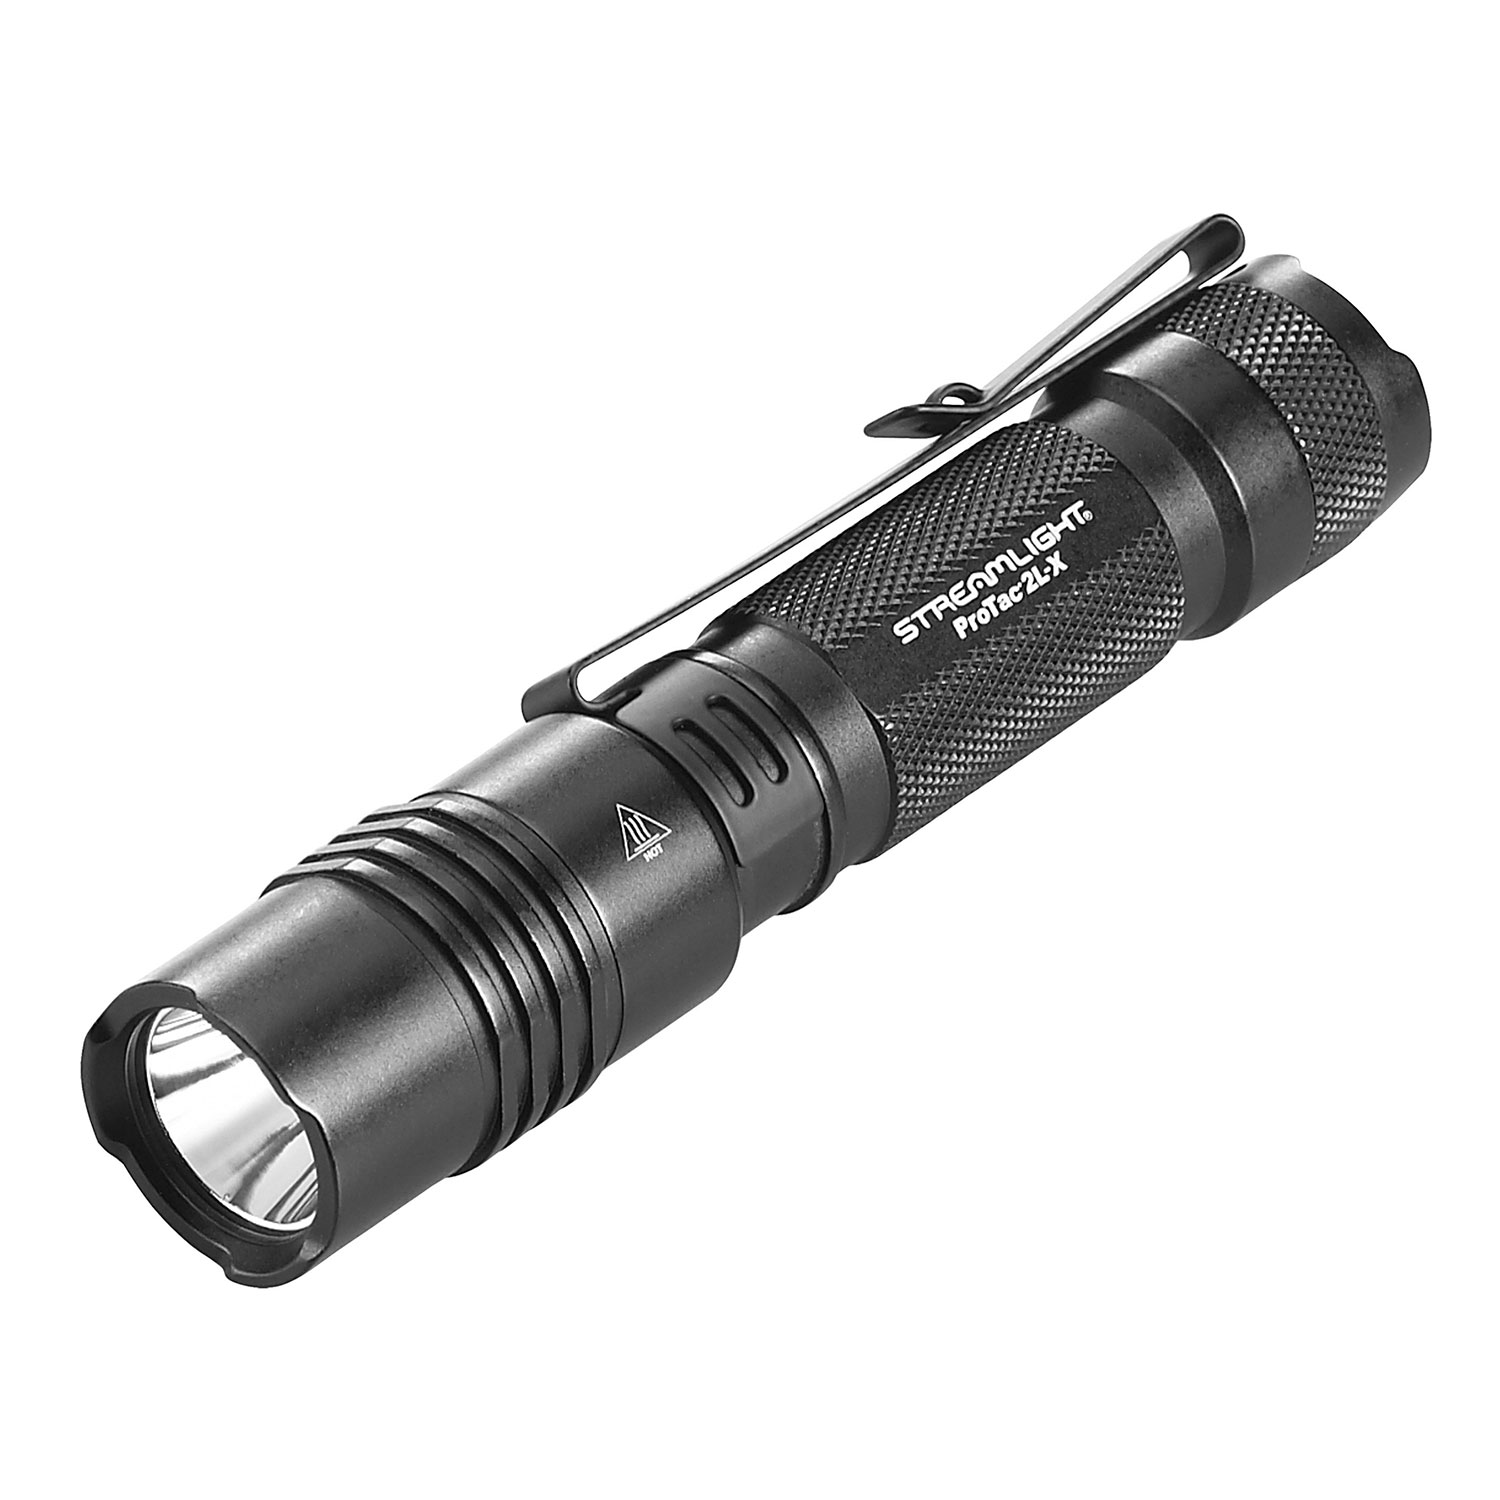 Streamlight ProTac 2L-X Light with USB Rechargeable Battery